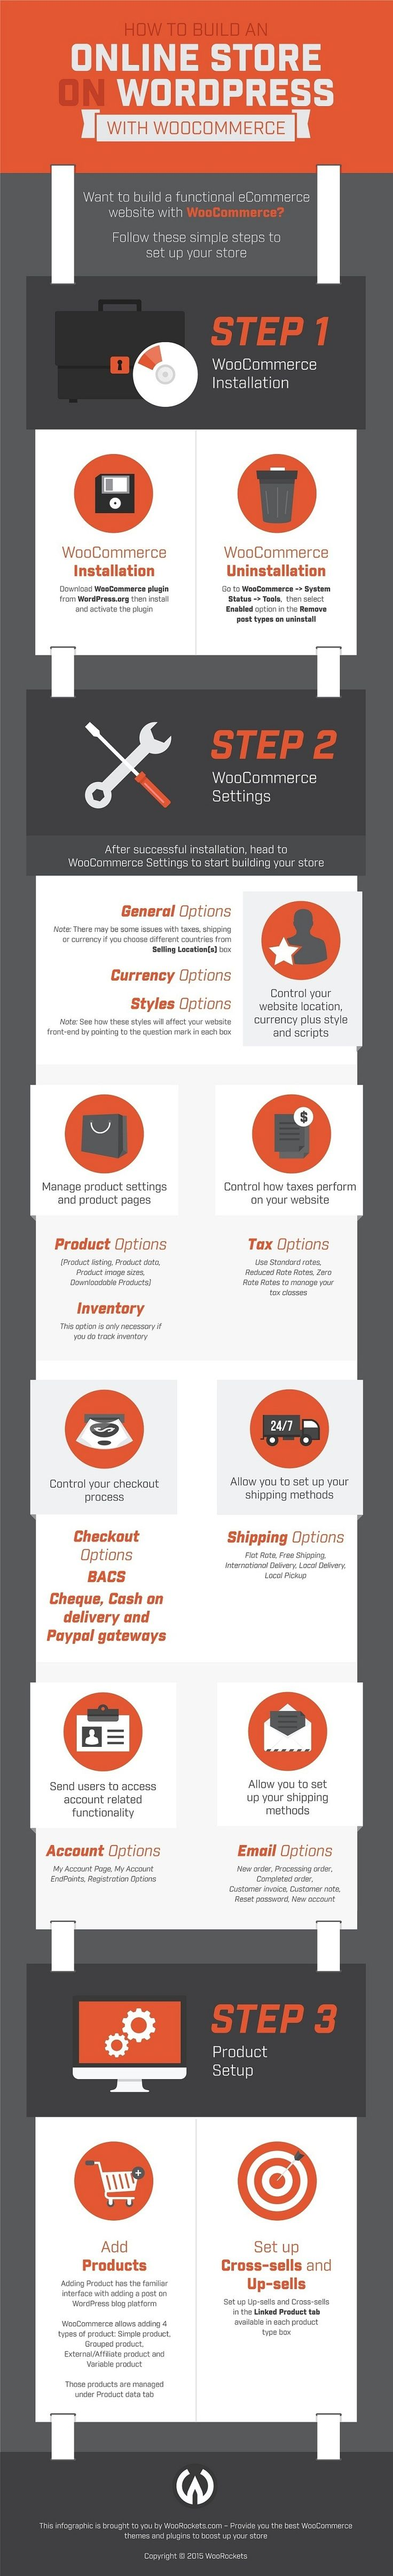 #Infographic: How to Build a #WooCommerce Store on #WordPress